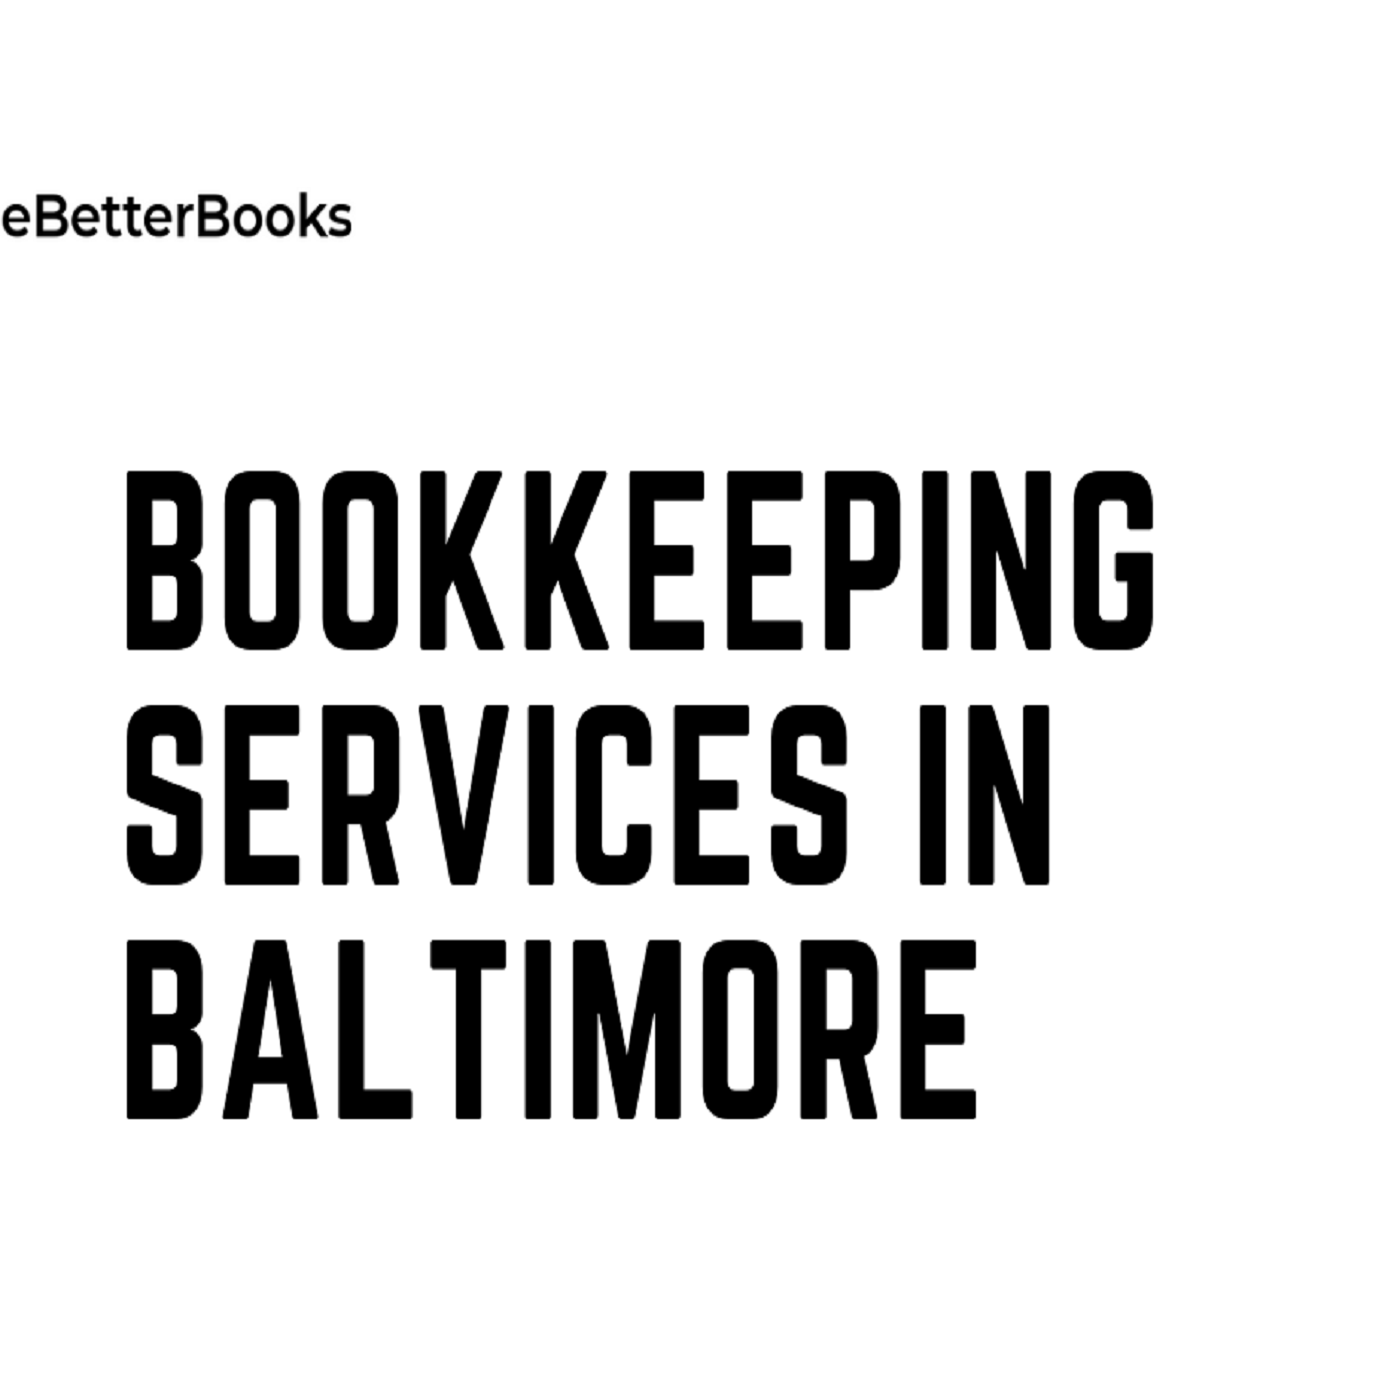 Bookkeeping Services in Baltimore |Online Bookkeeping Services